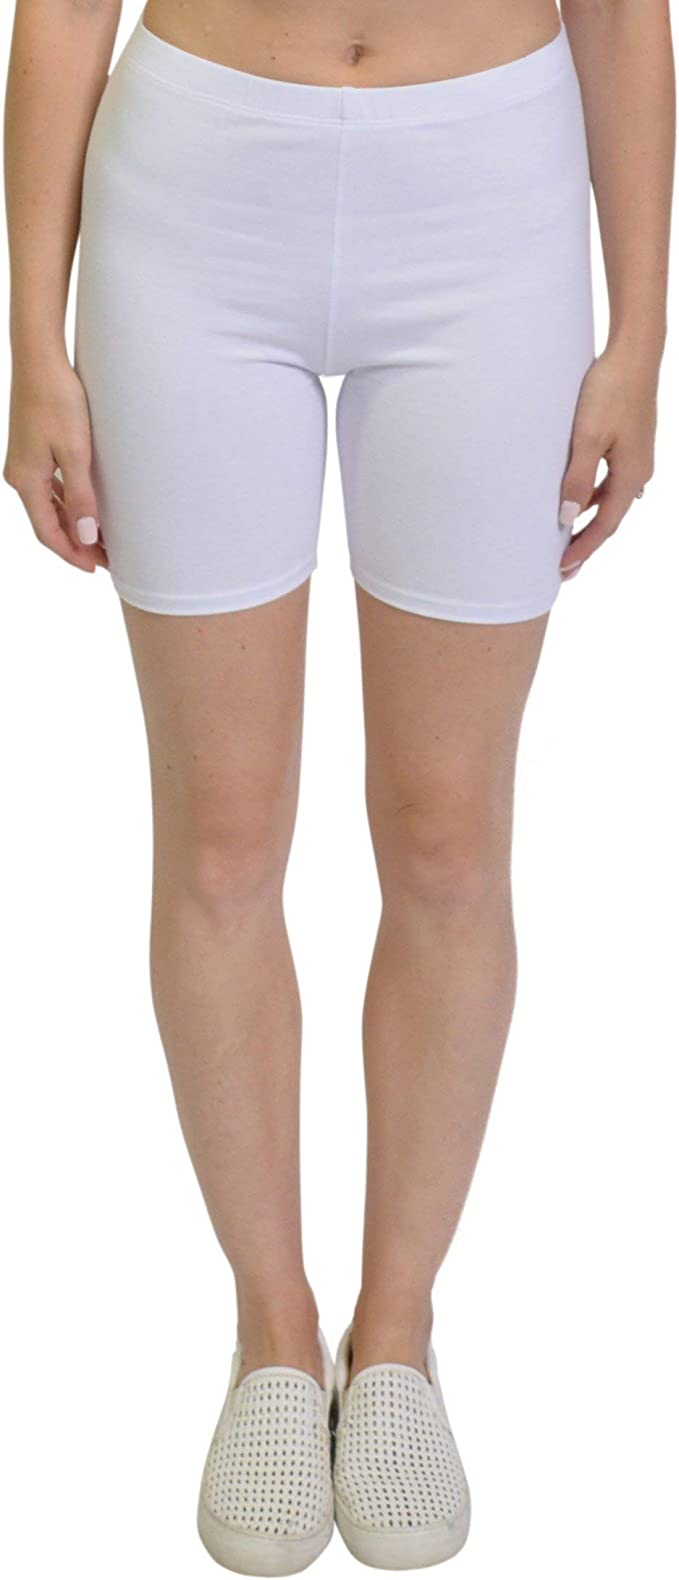 Stretch is Comfort Infant Cotton Biker Shorts Pack of 2 Black and White Medium 9M